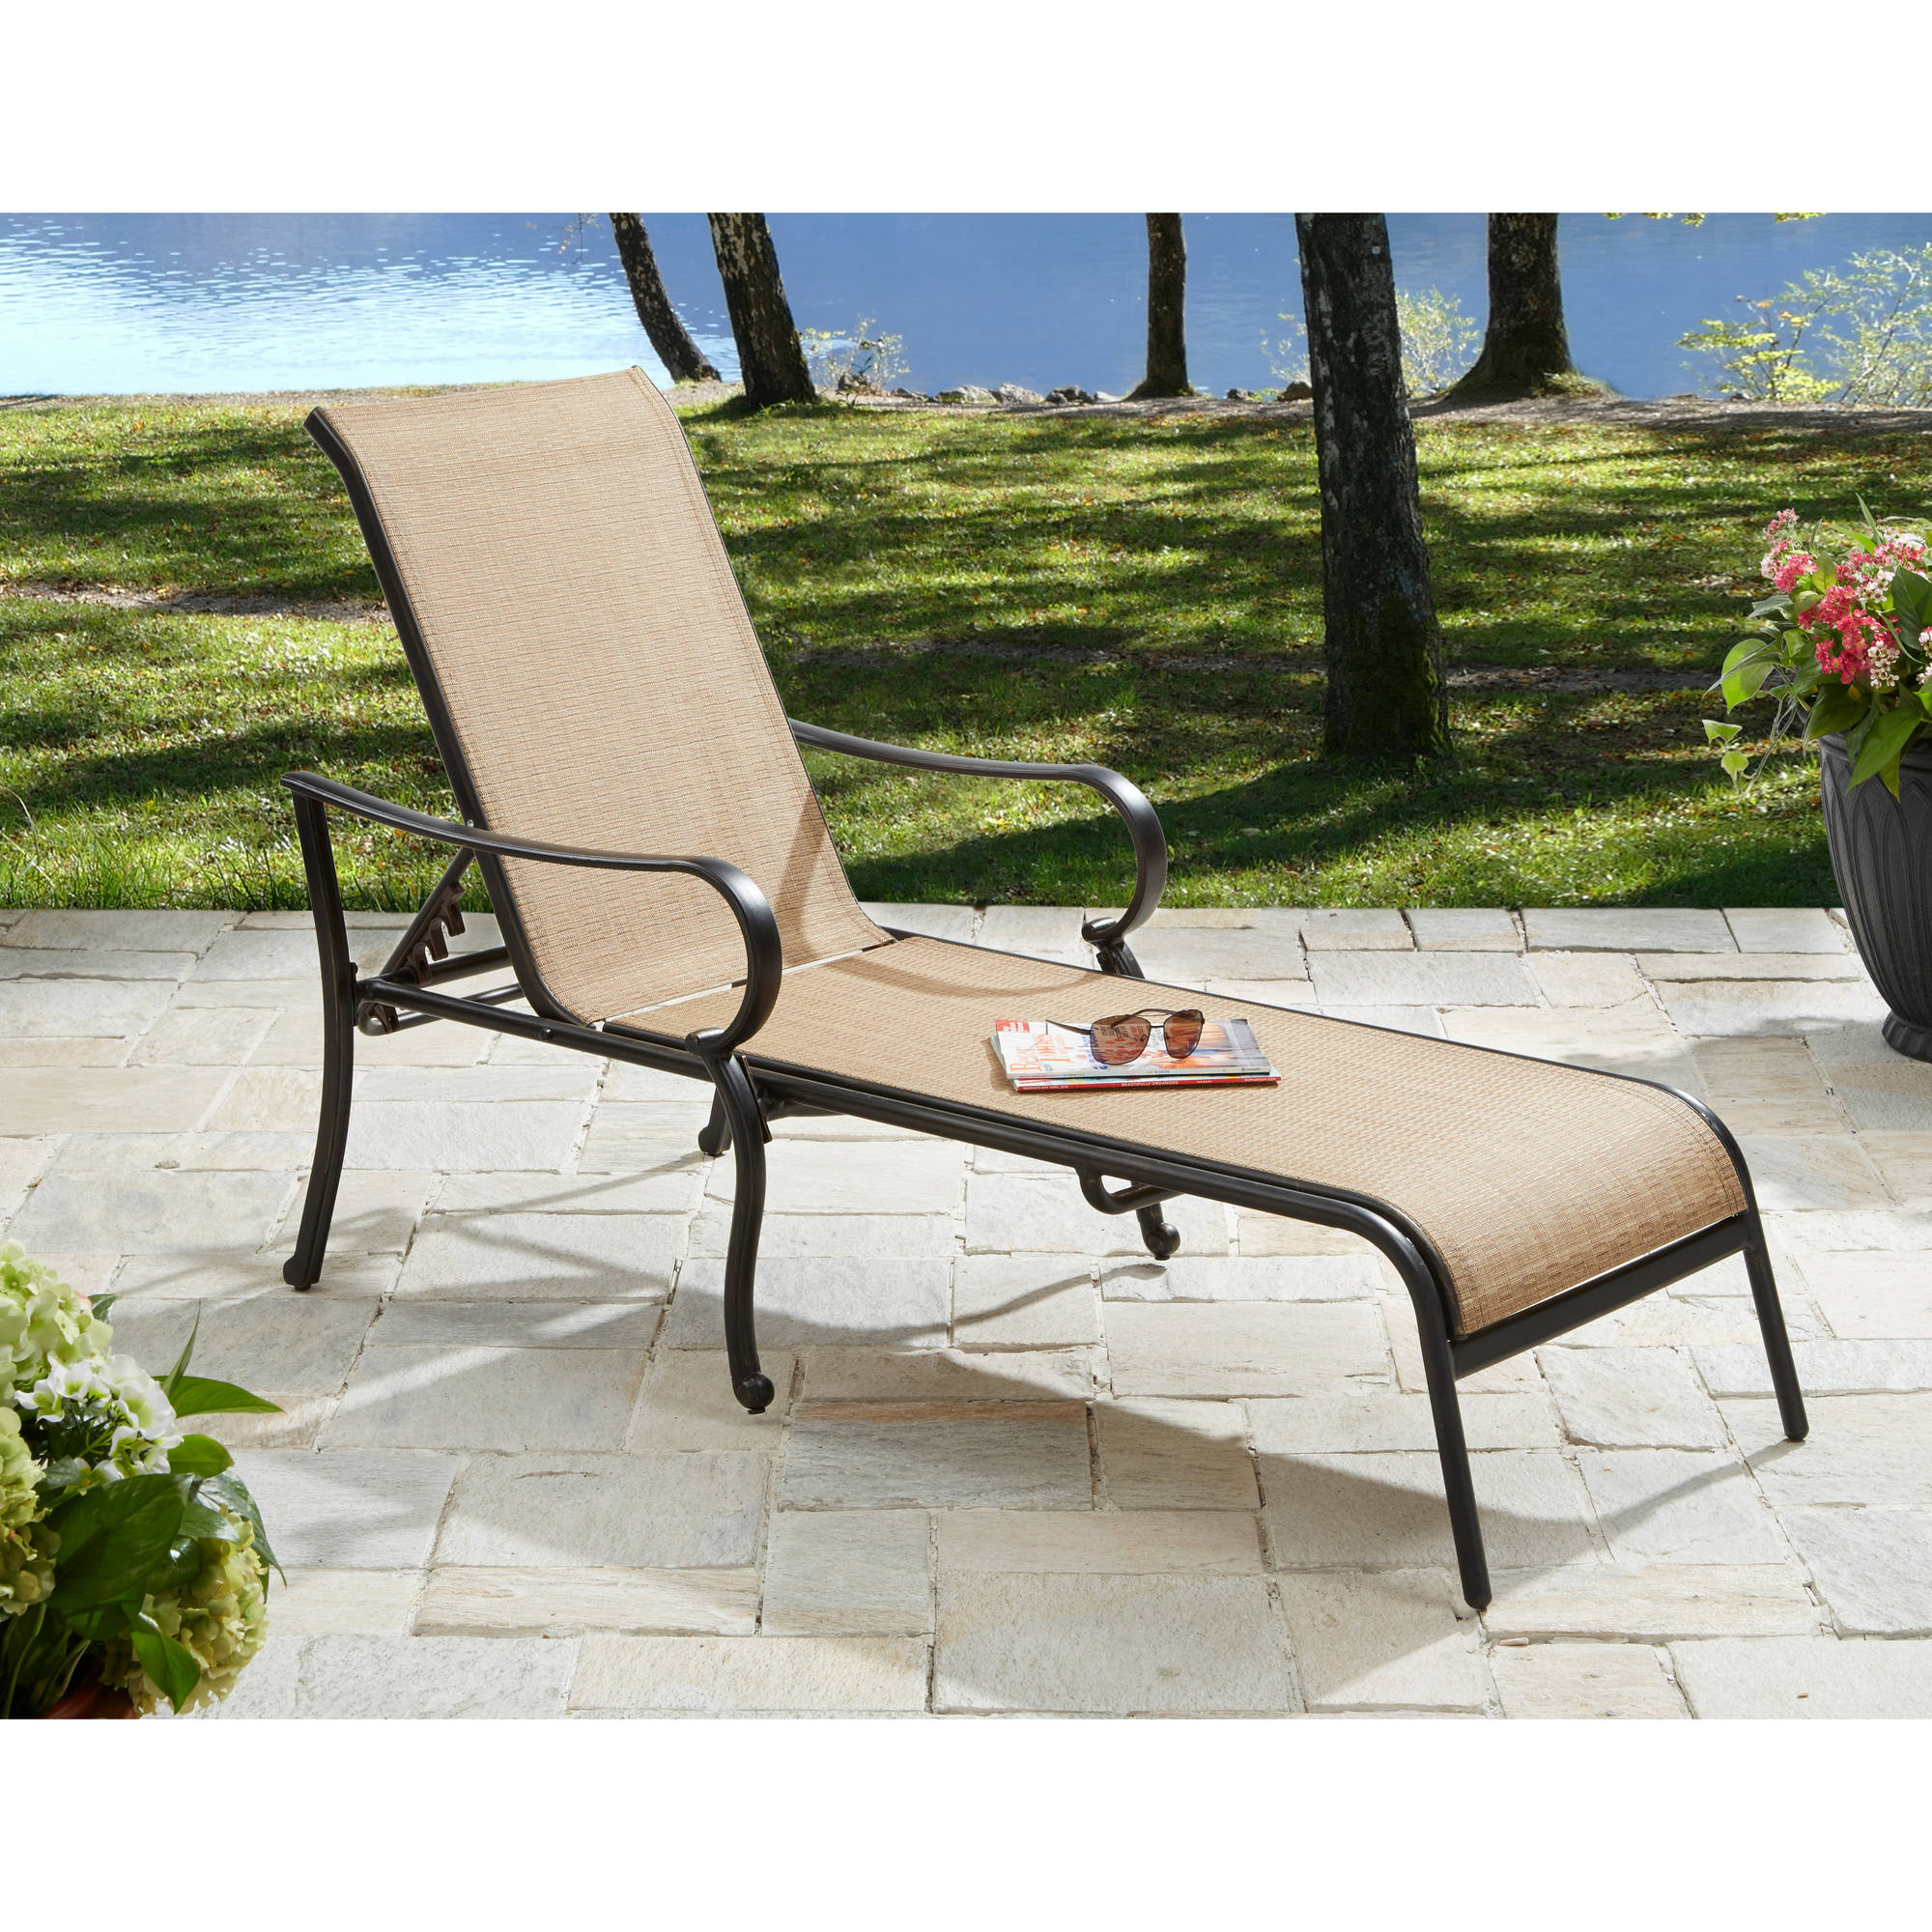 Better Homes & Gardens Warrens Outdoor Chaise Lounge